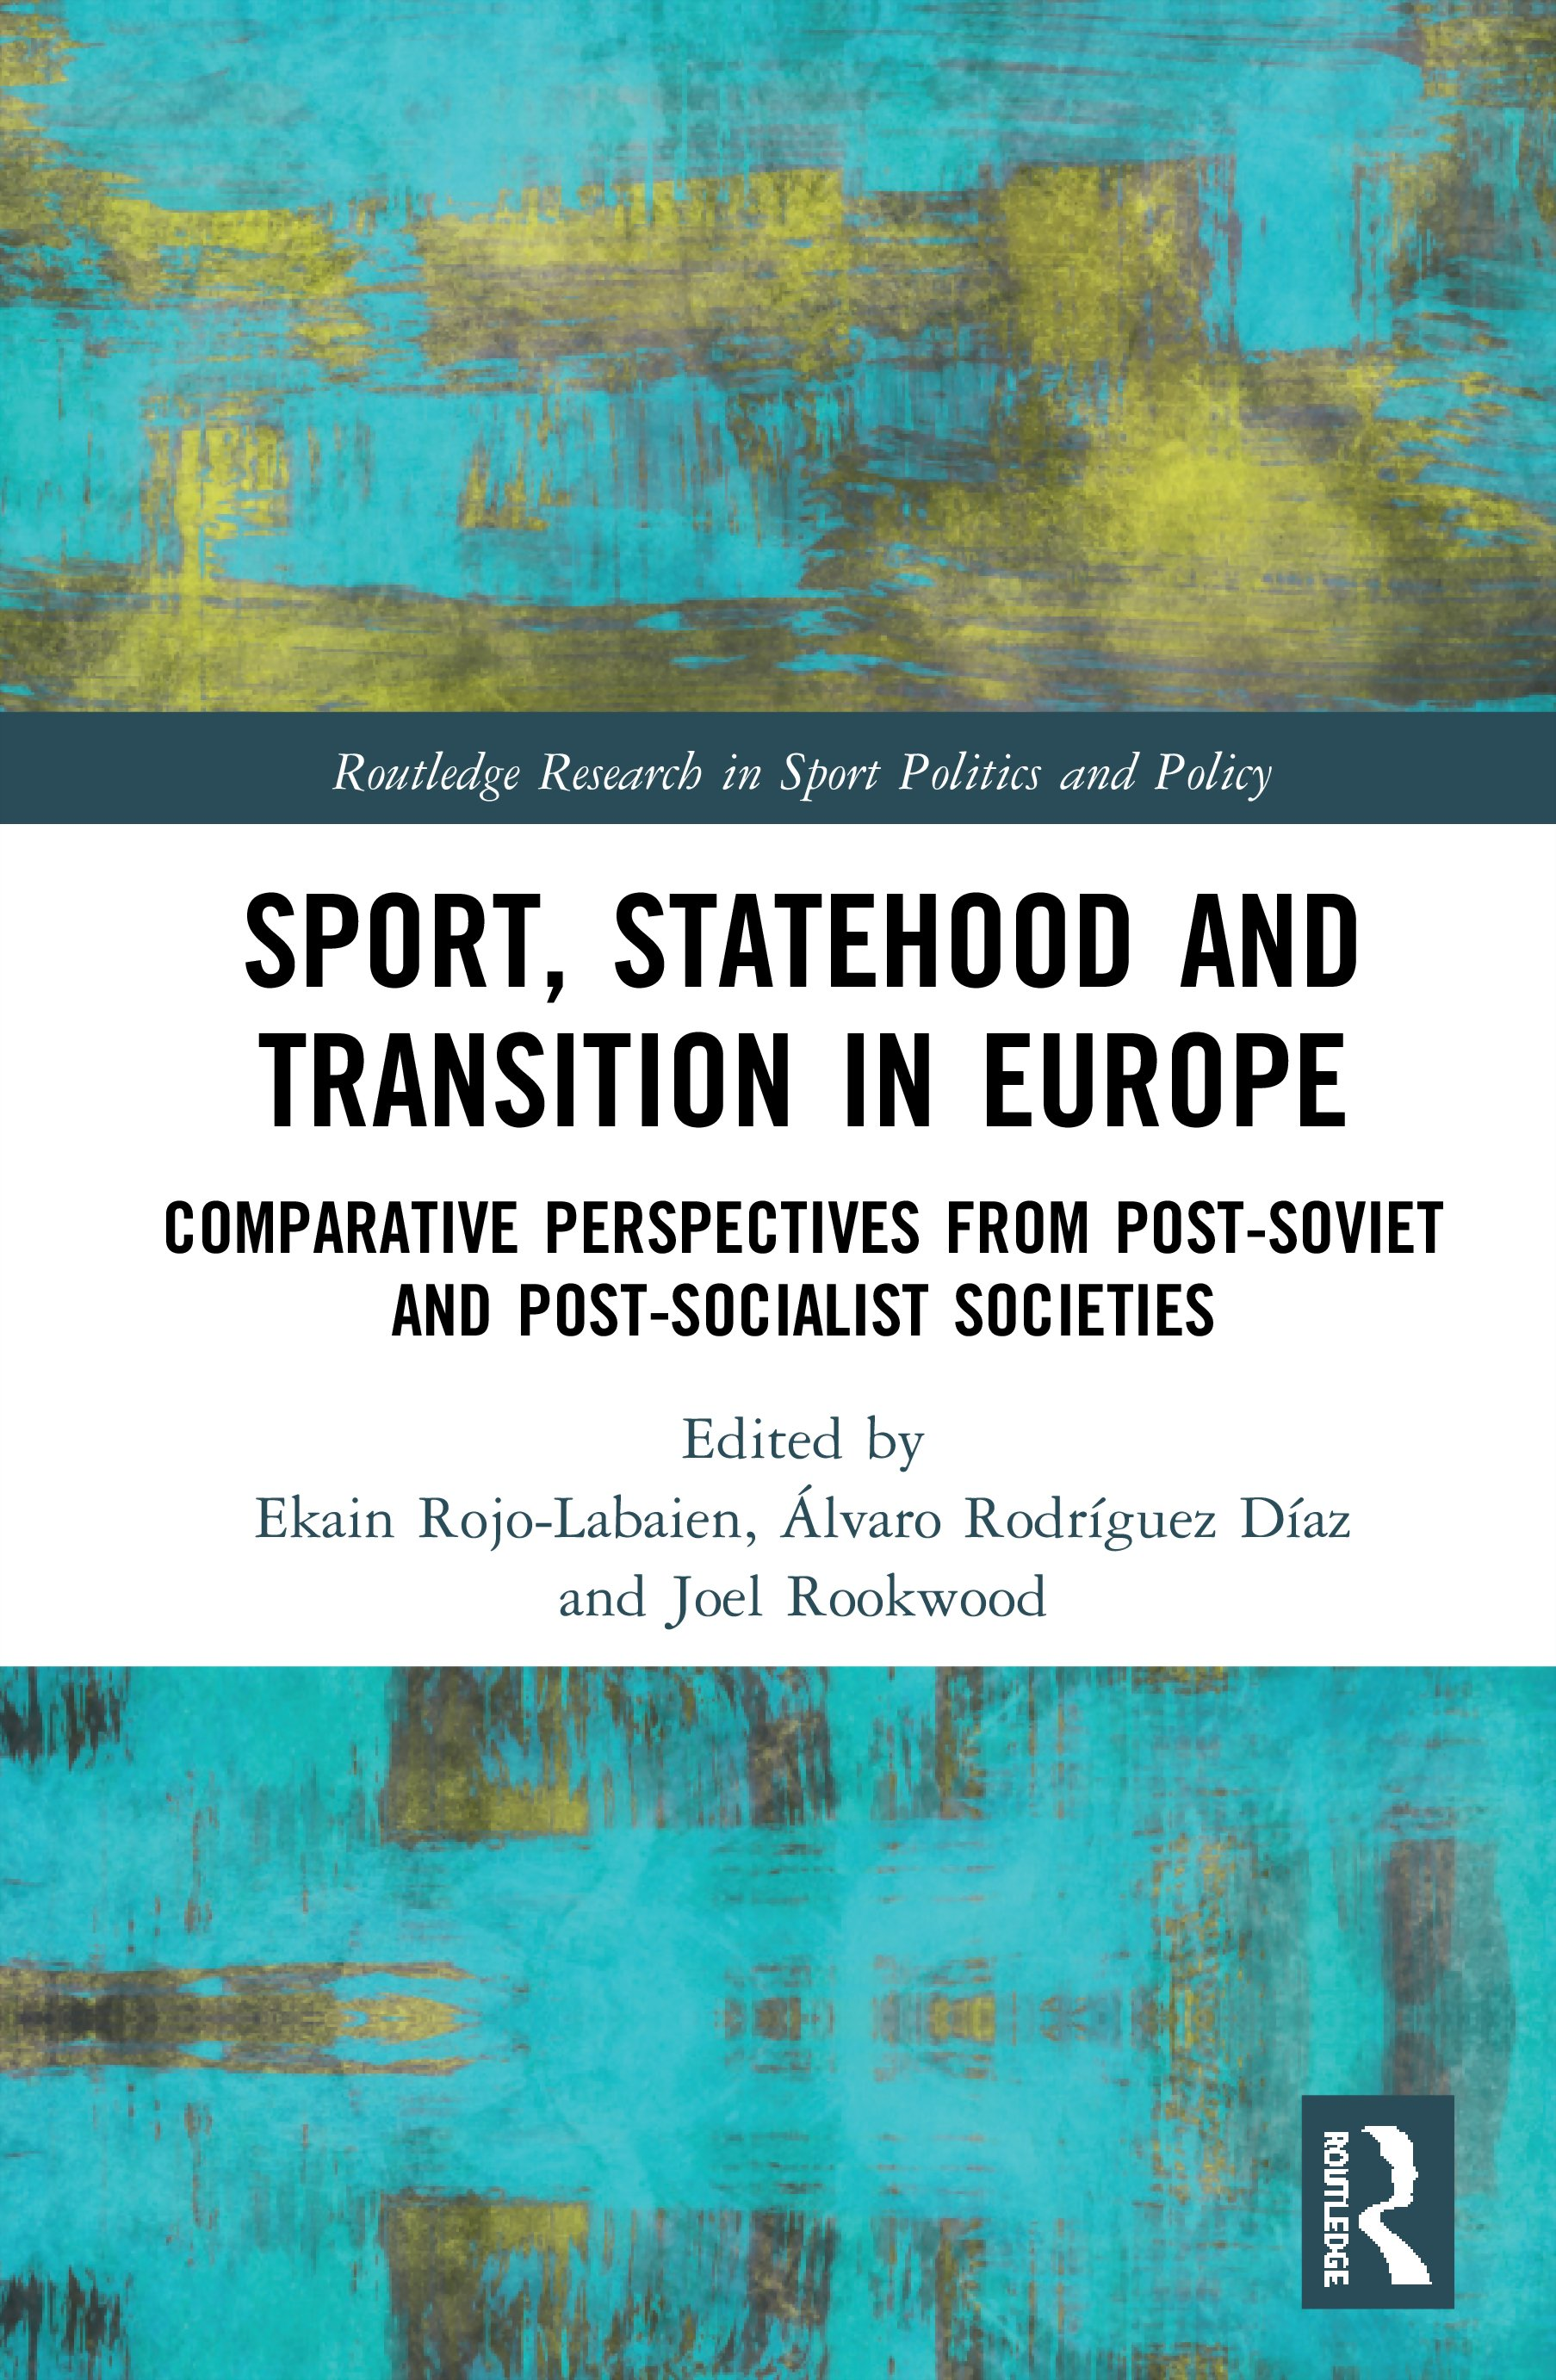 Sport, Statehood and Transition in Europe: Comparative perspectives from post-Soviet and post-socialist societies book cover